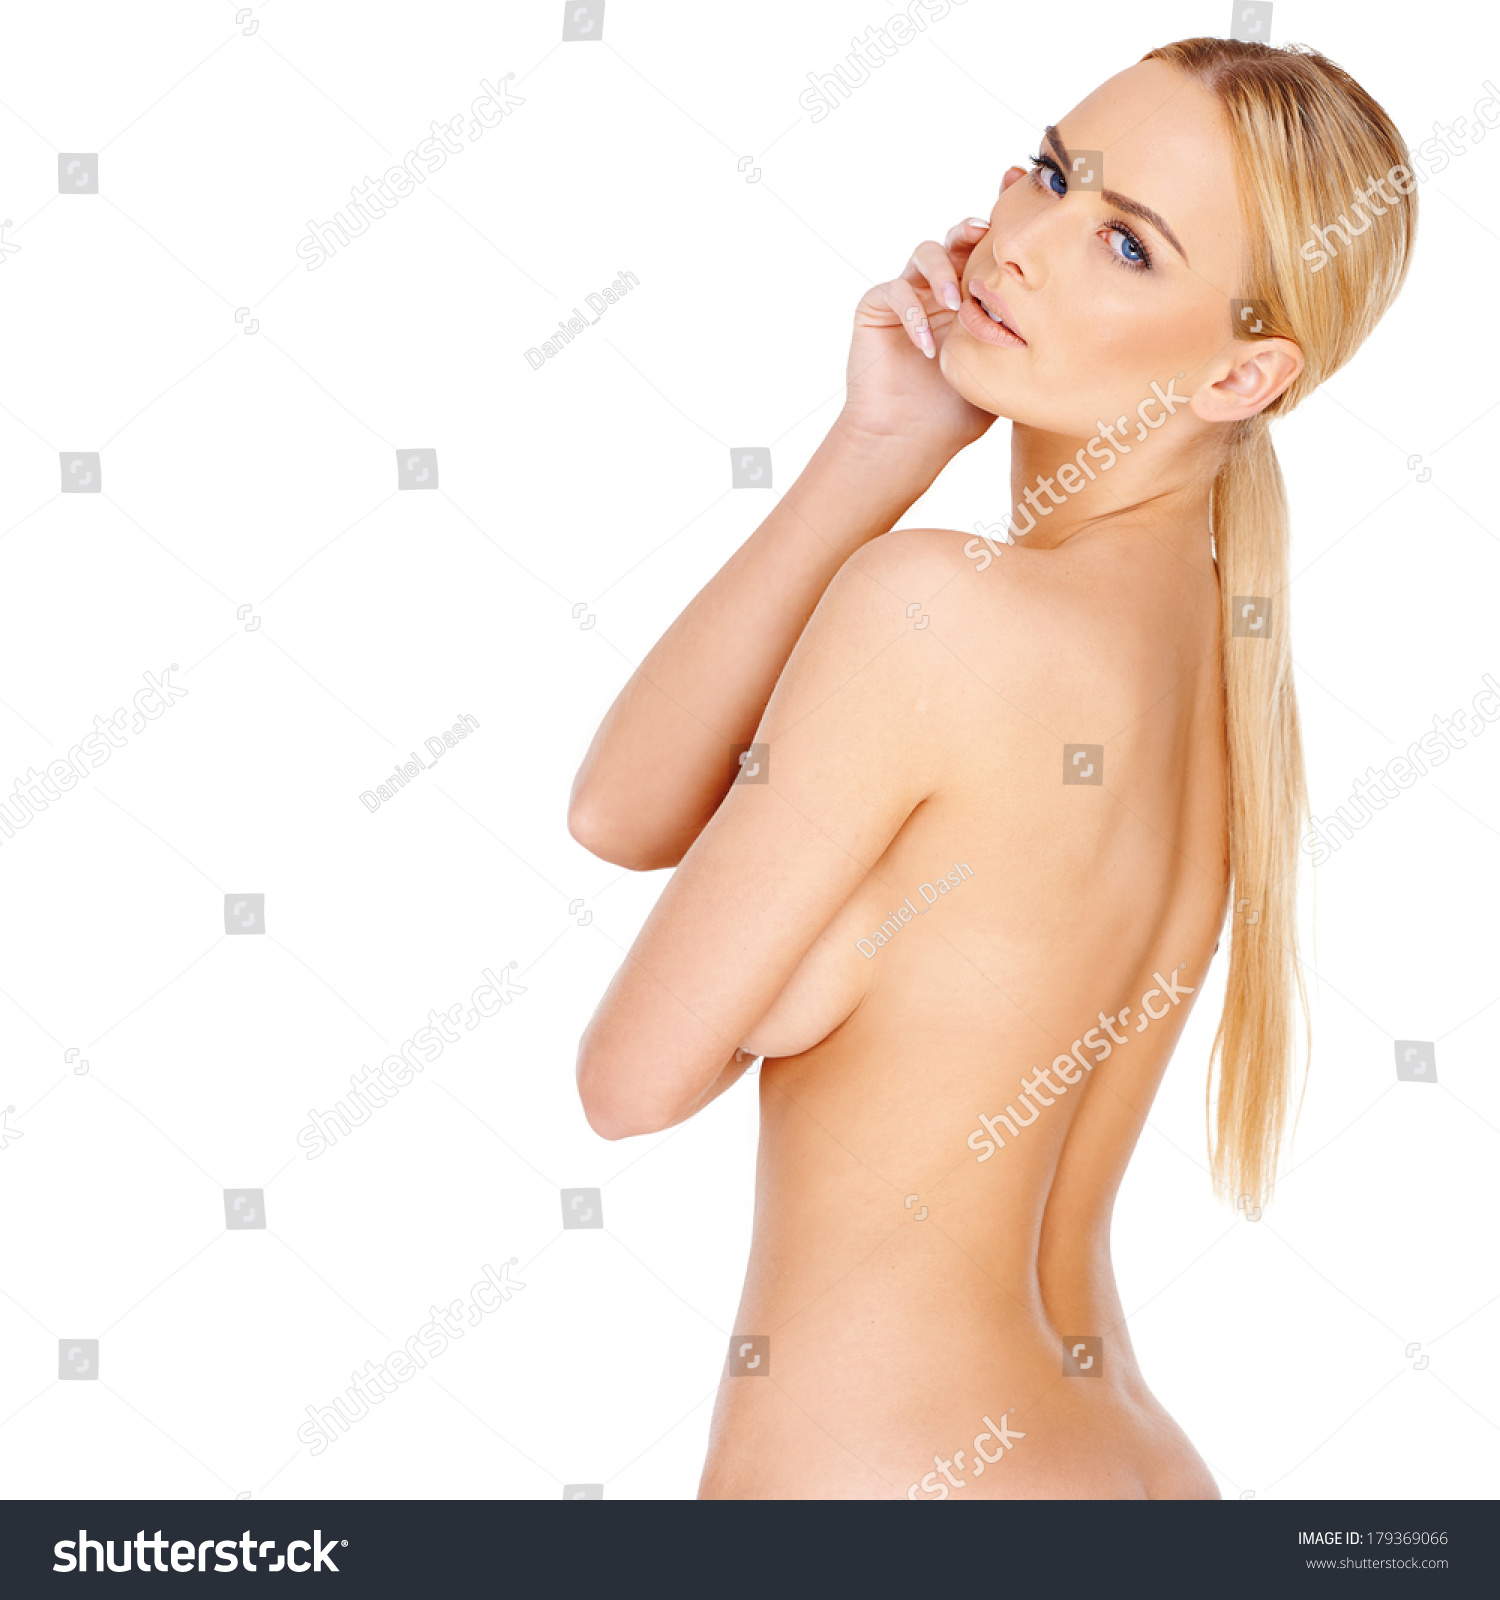 naked girl with shoulder pads on